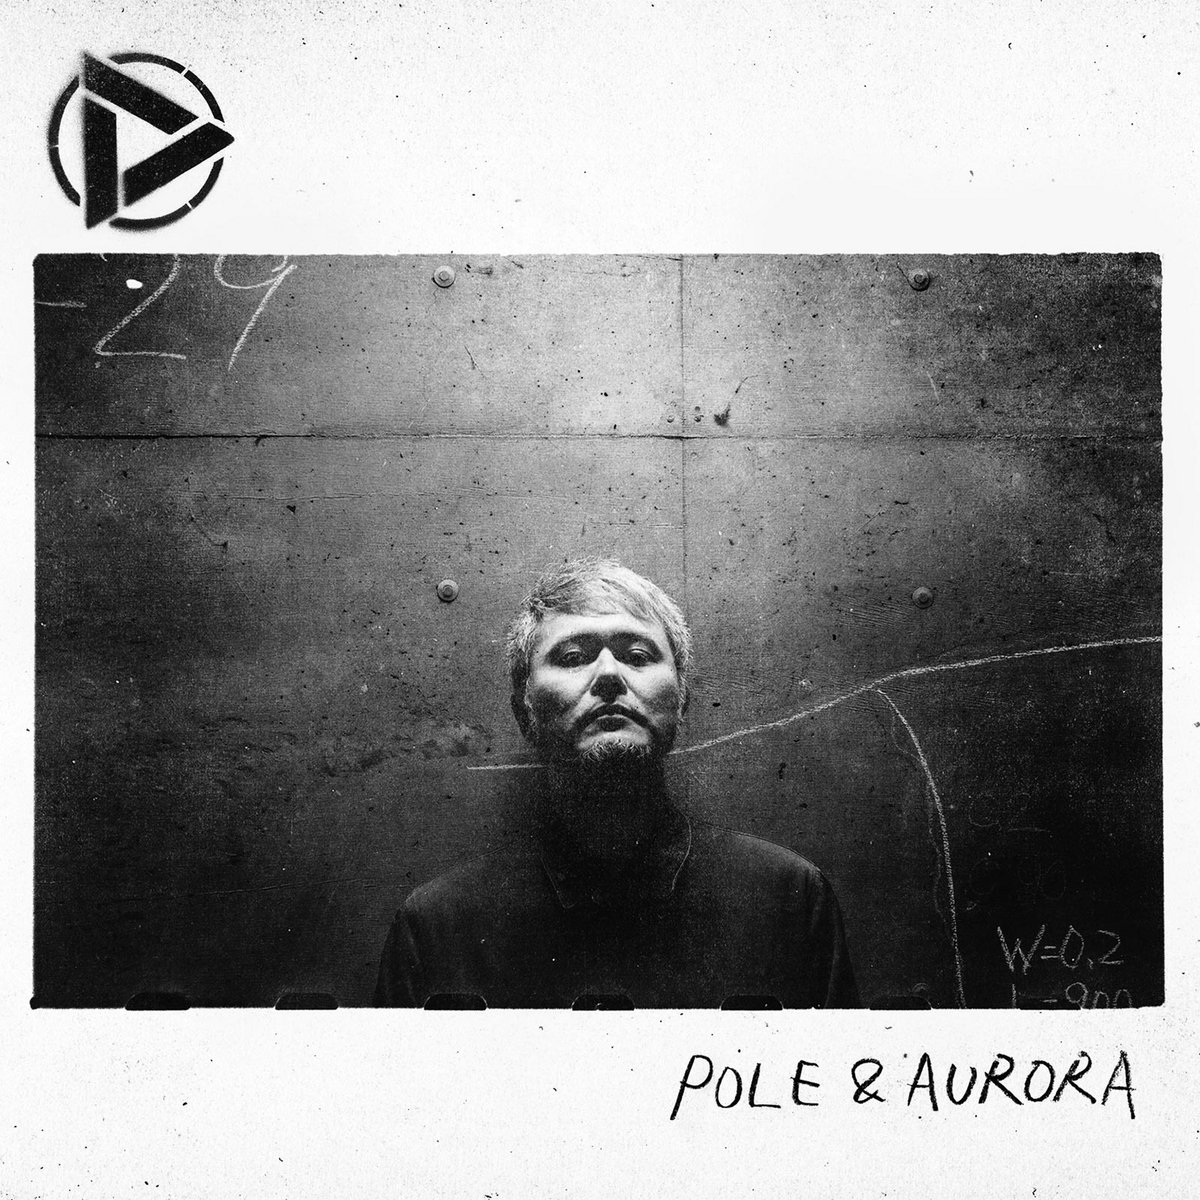 POLE & AURORA | Discharming man | 十三月 / 13th recordds